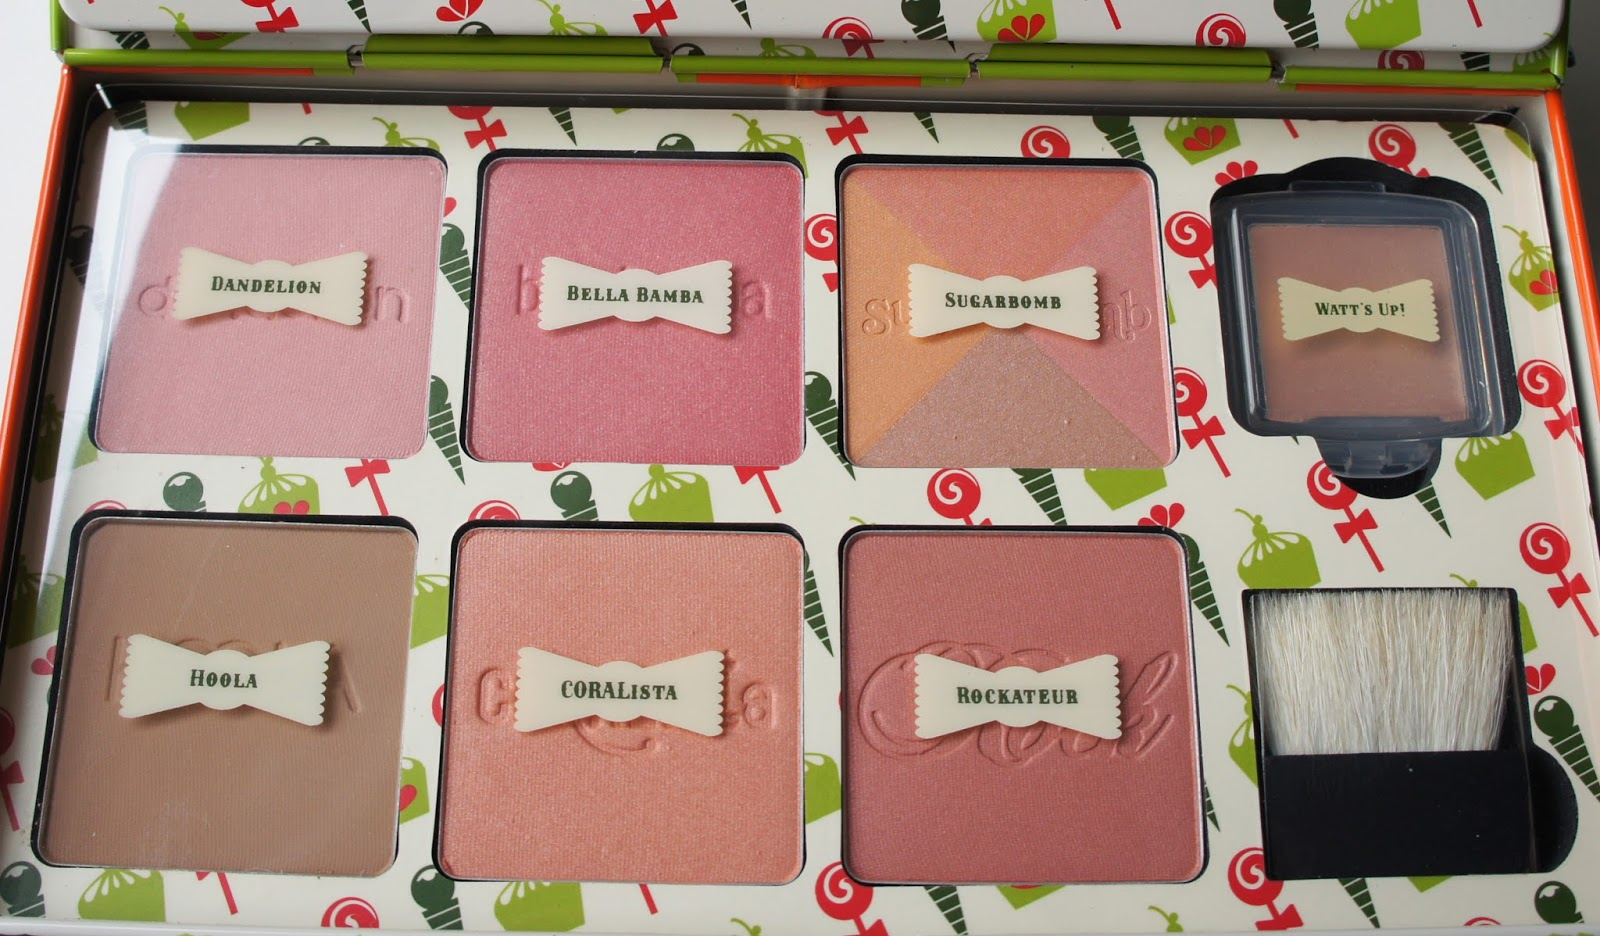 benefit,hoola,rockateur,coralista,bellabamba,watts up,dandelion,sugarbomb